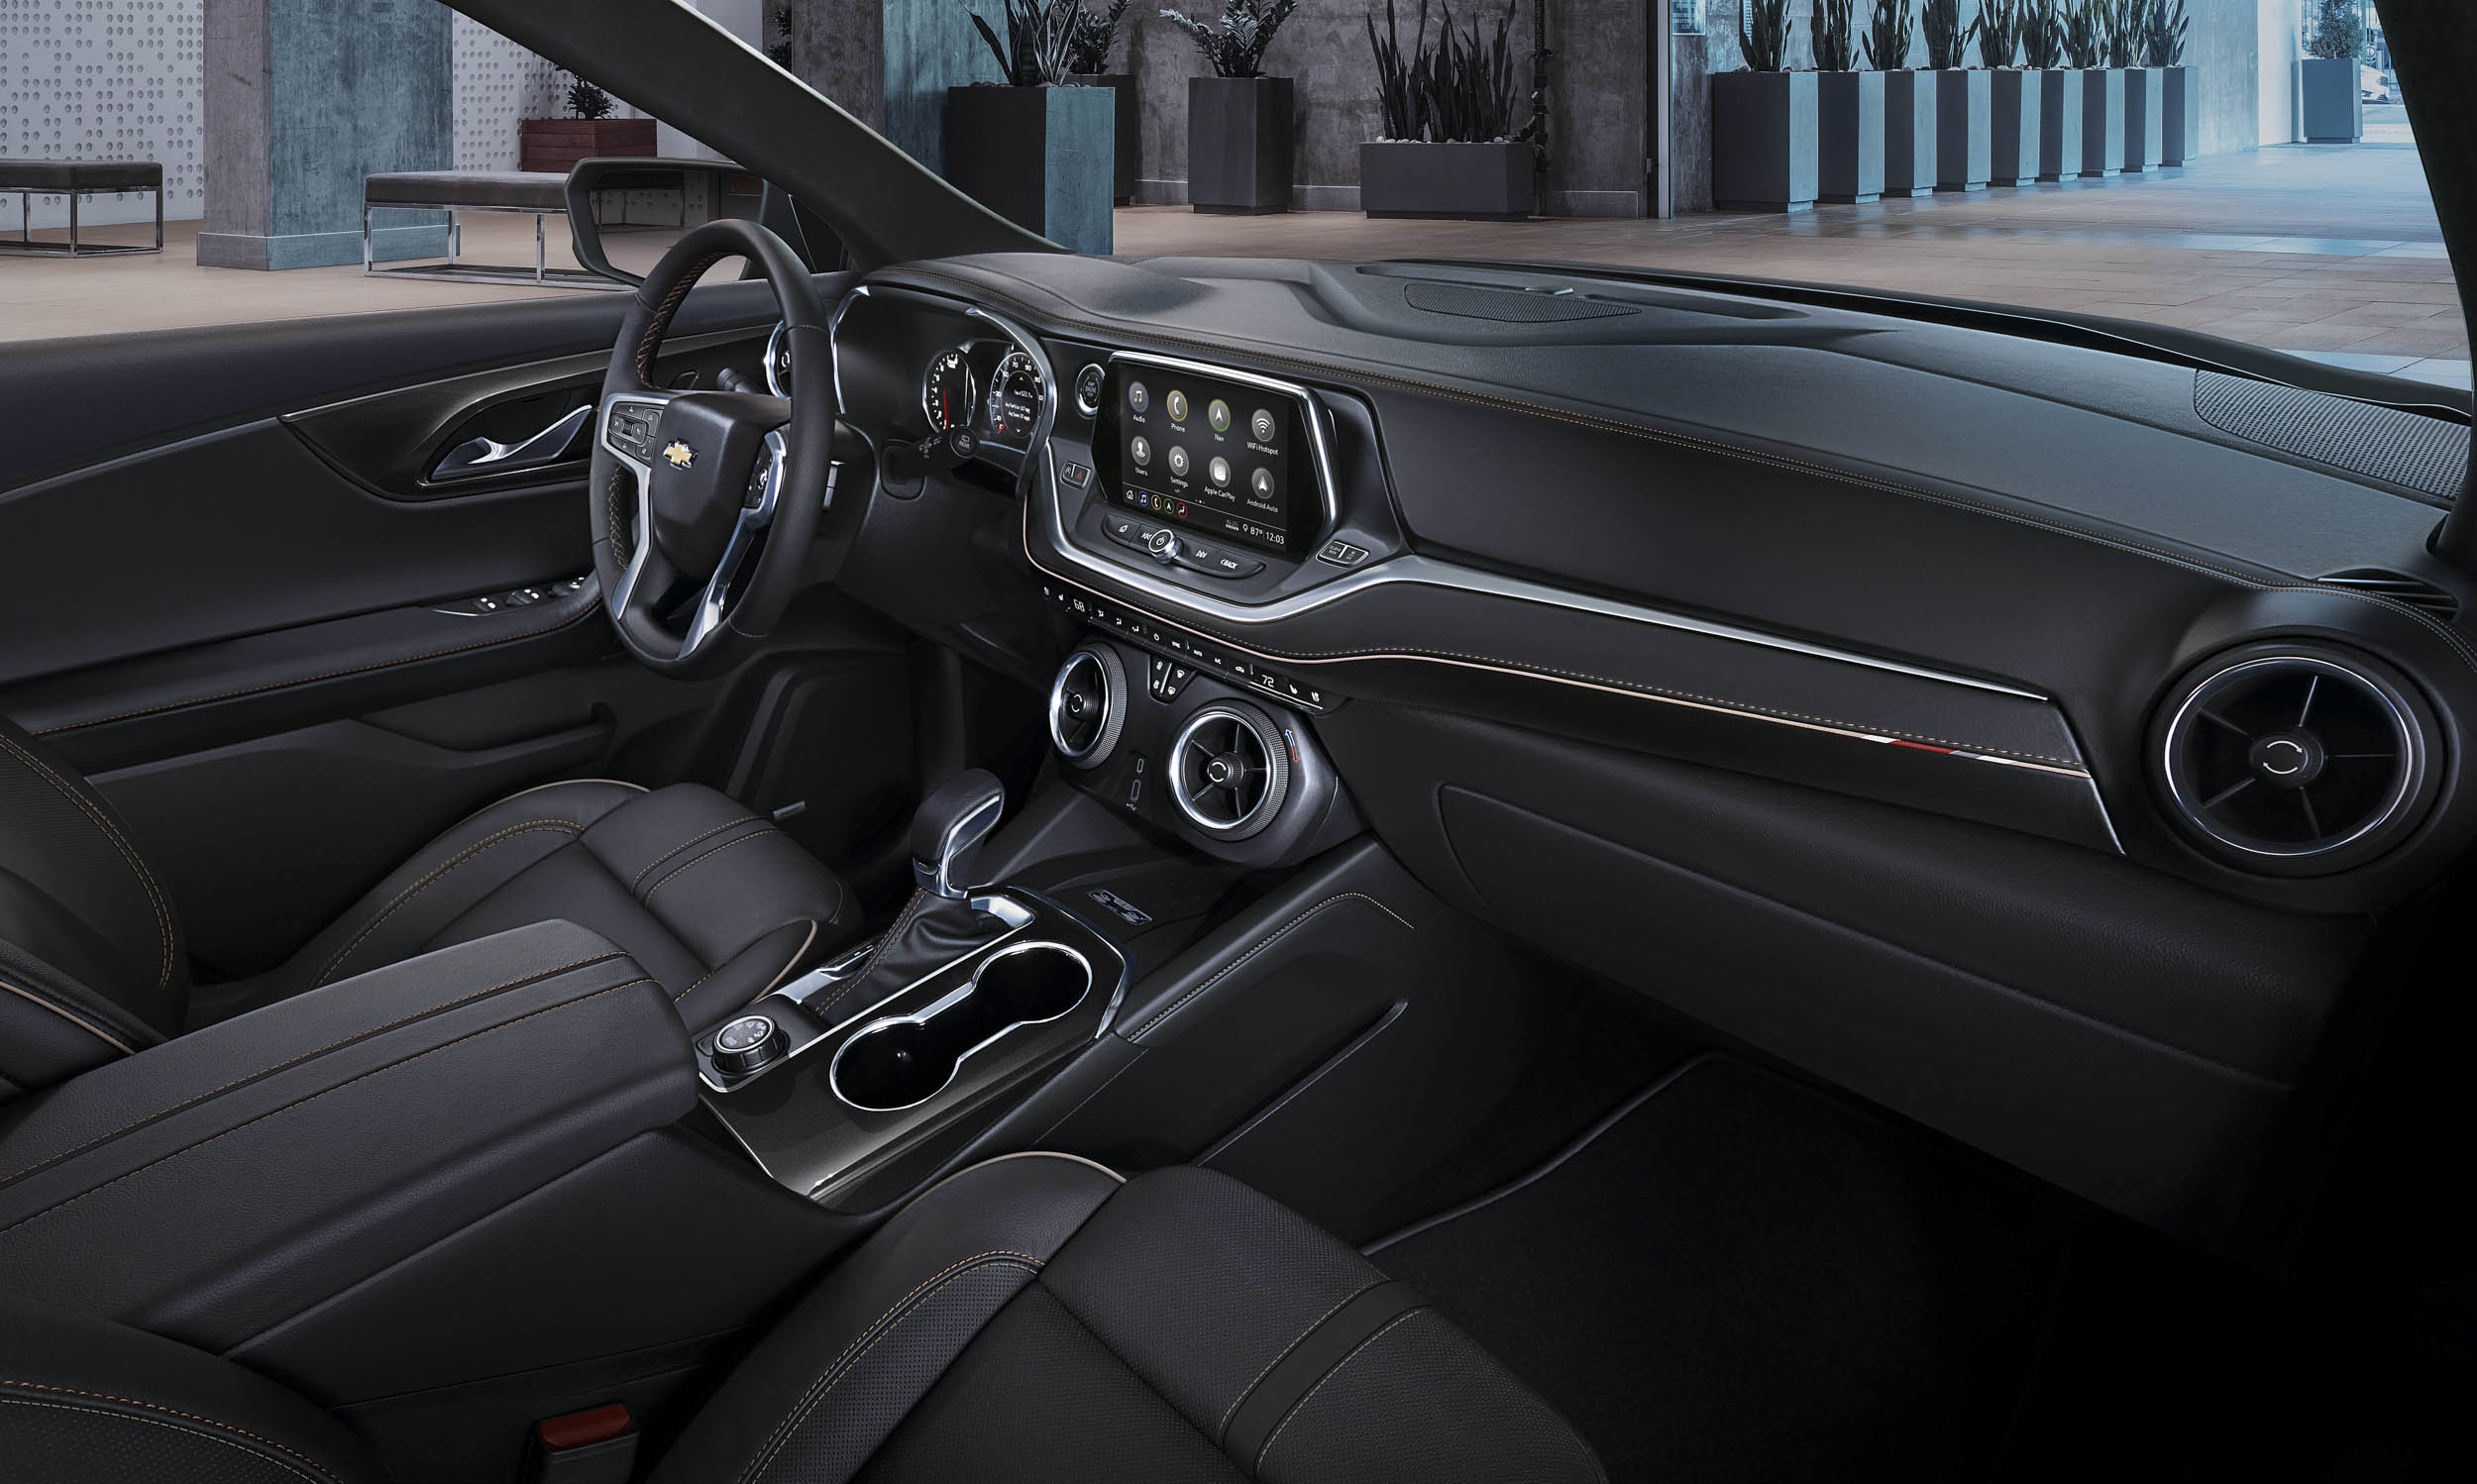 2019 Chevrolet Blazer interior and dash